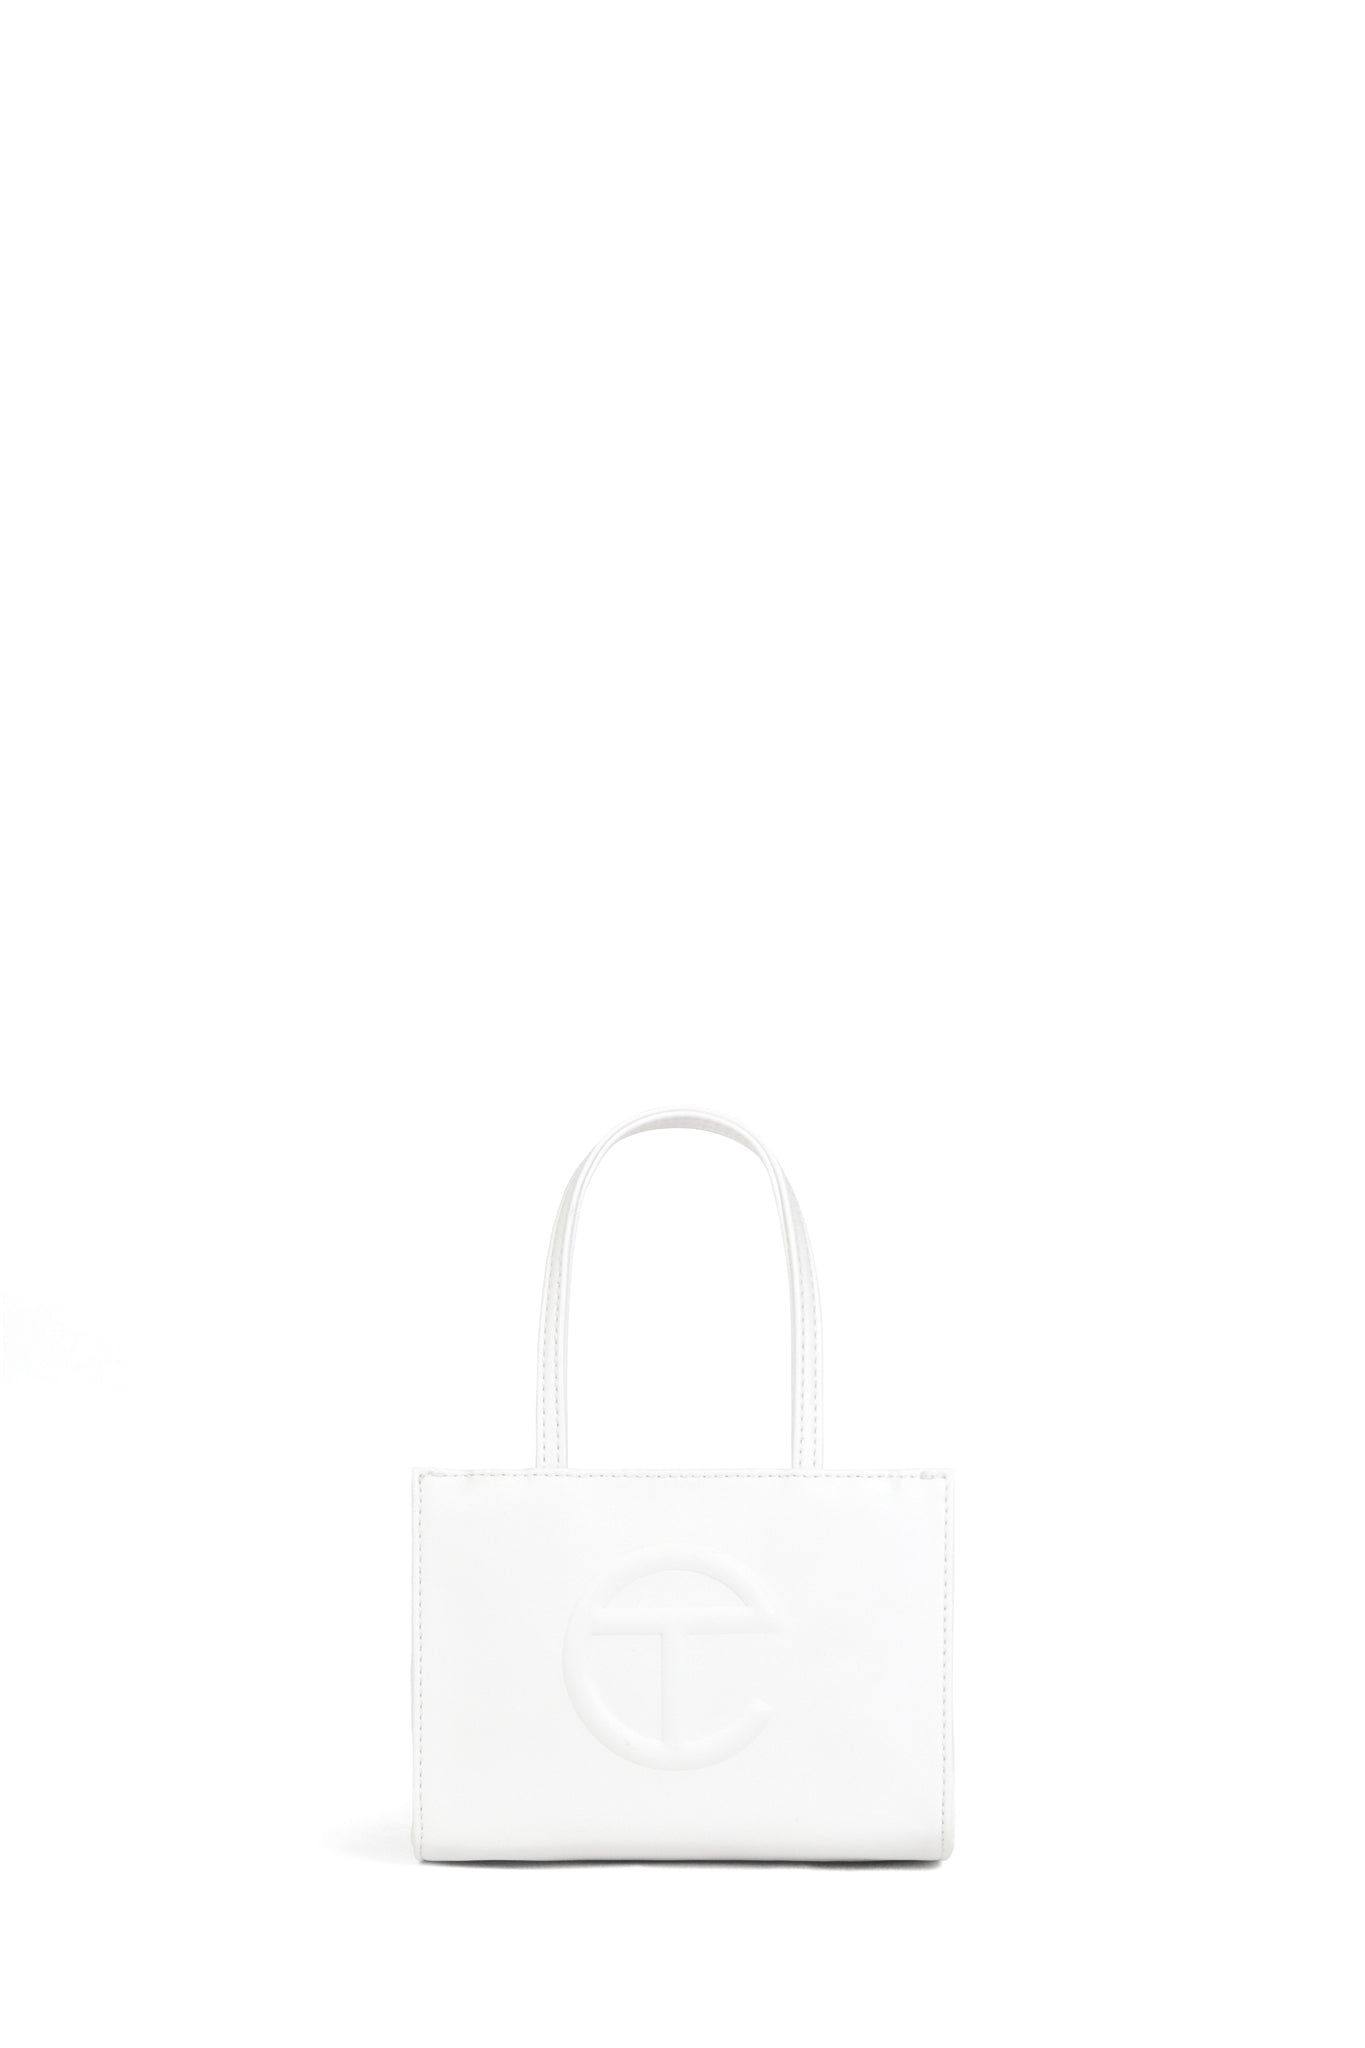 Telfar Small Shopping Bag, White